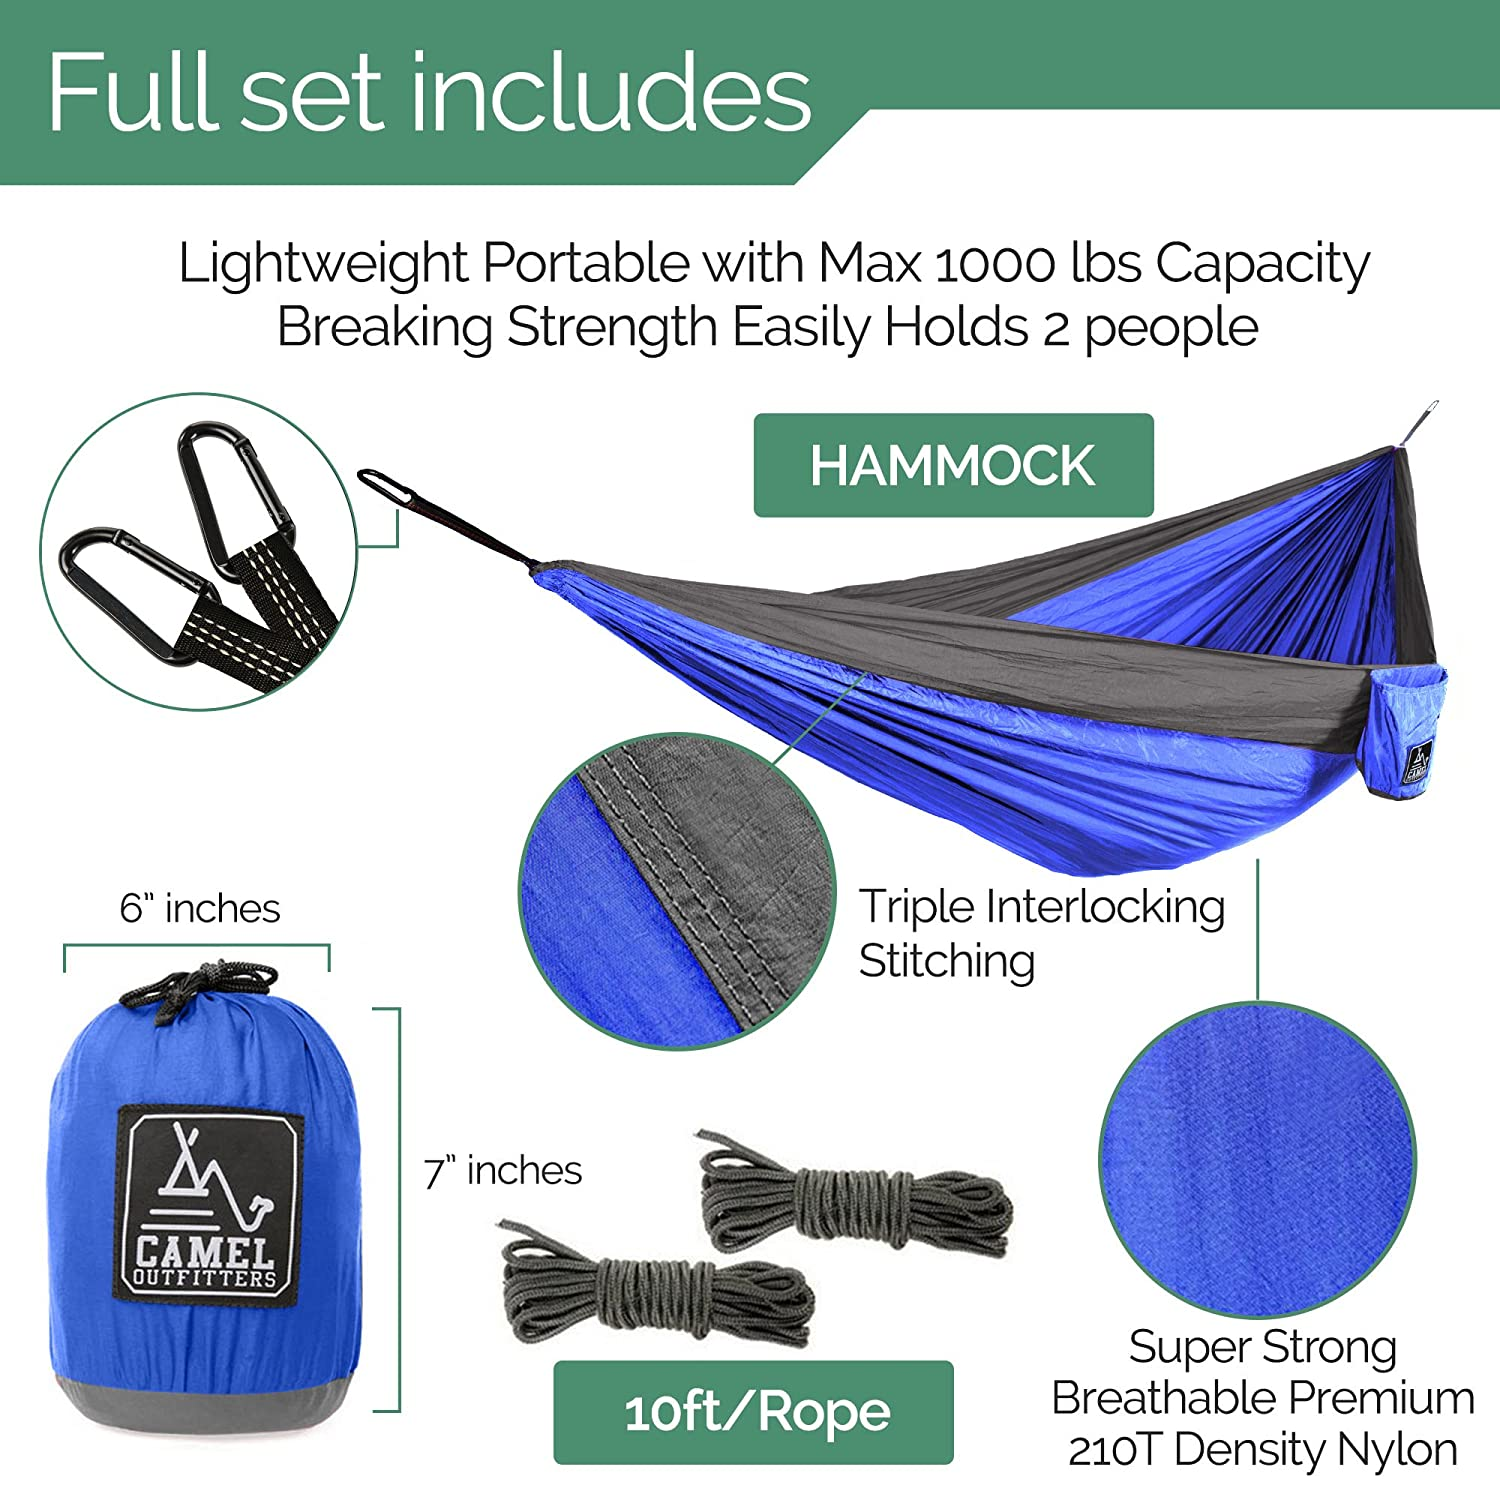 Amazon camel outfitters xl double nylon parachute camping amazon camel outfitters xl double nylon parachute camping hammock lightweight portable with max 1000 lbs capacity carabiners and long rope included asfbconference2016 Images